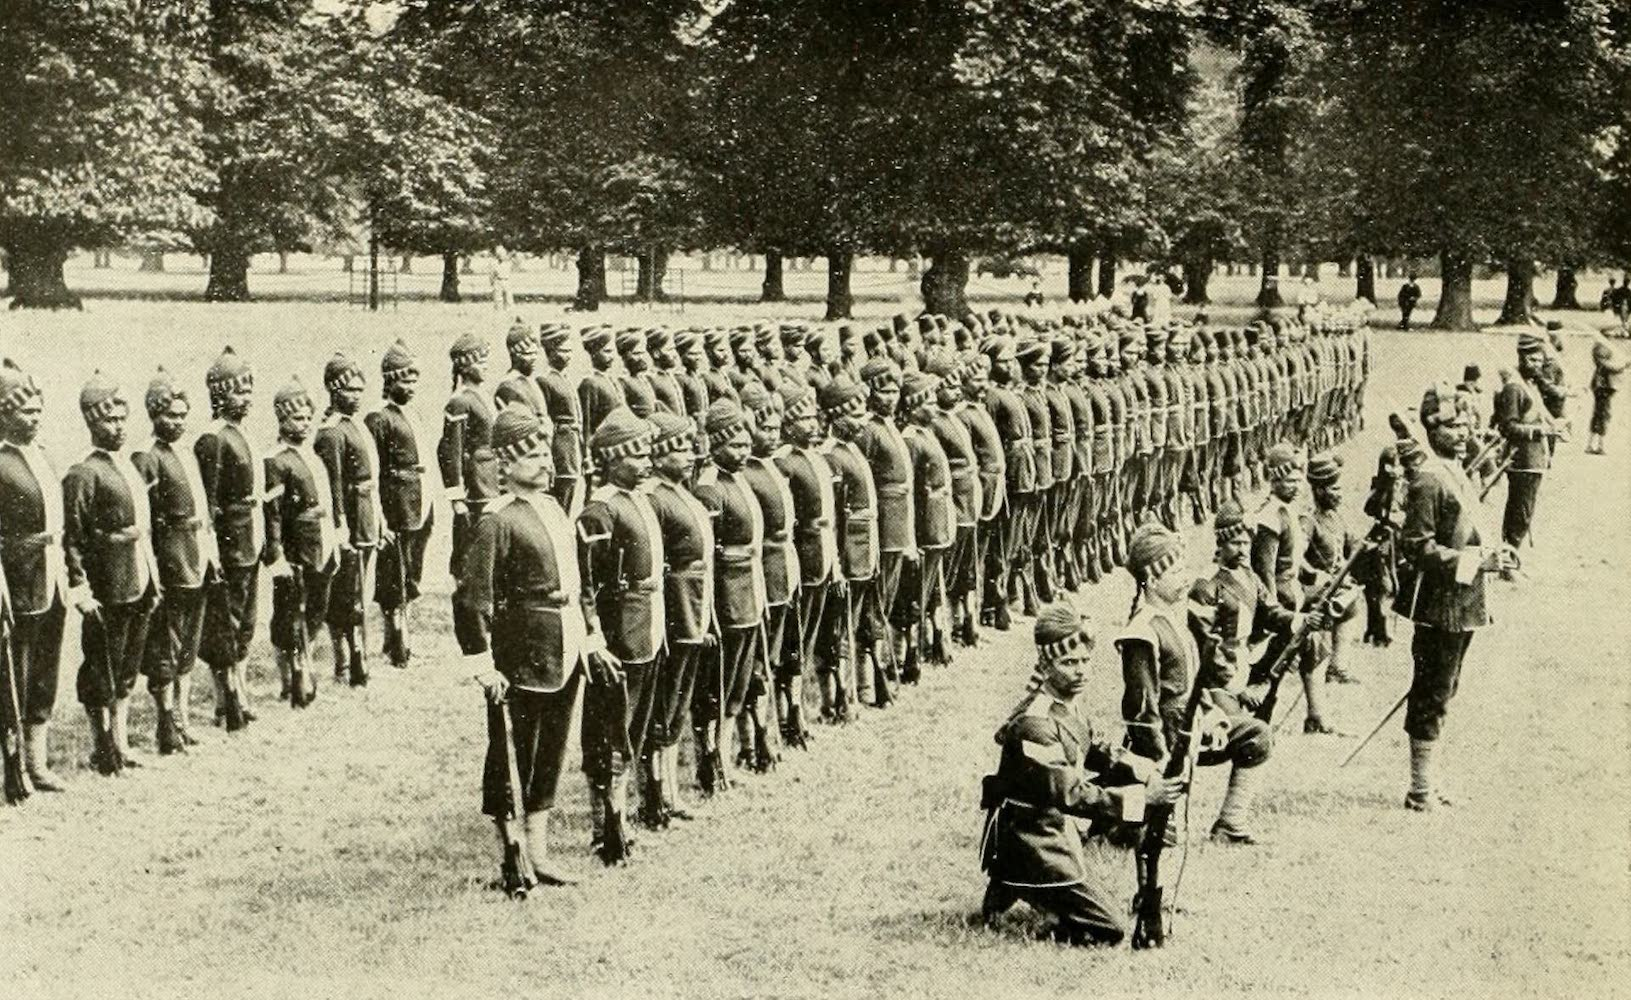 Laird & Lee's World's War Glimpses - East Indian Riflemen (1914)